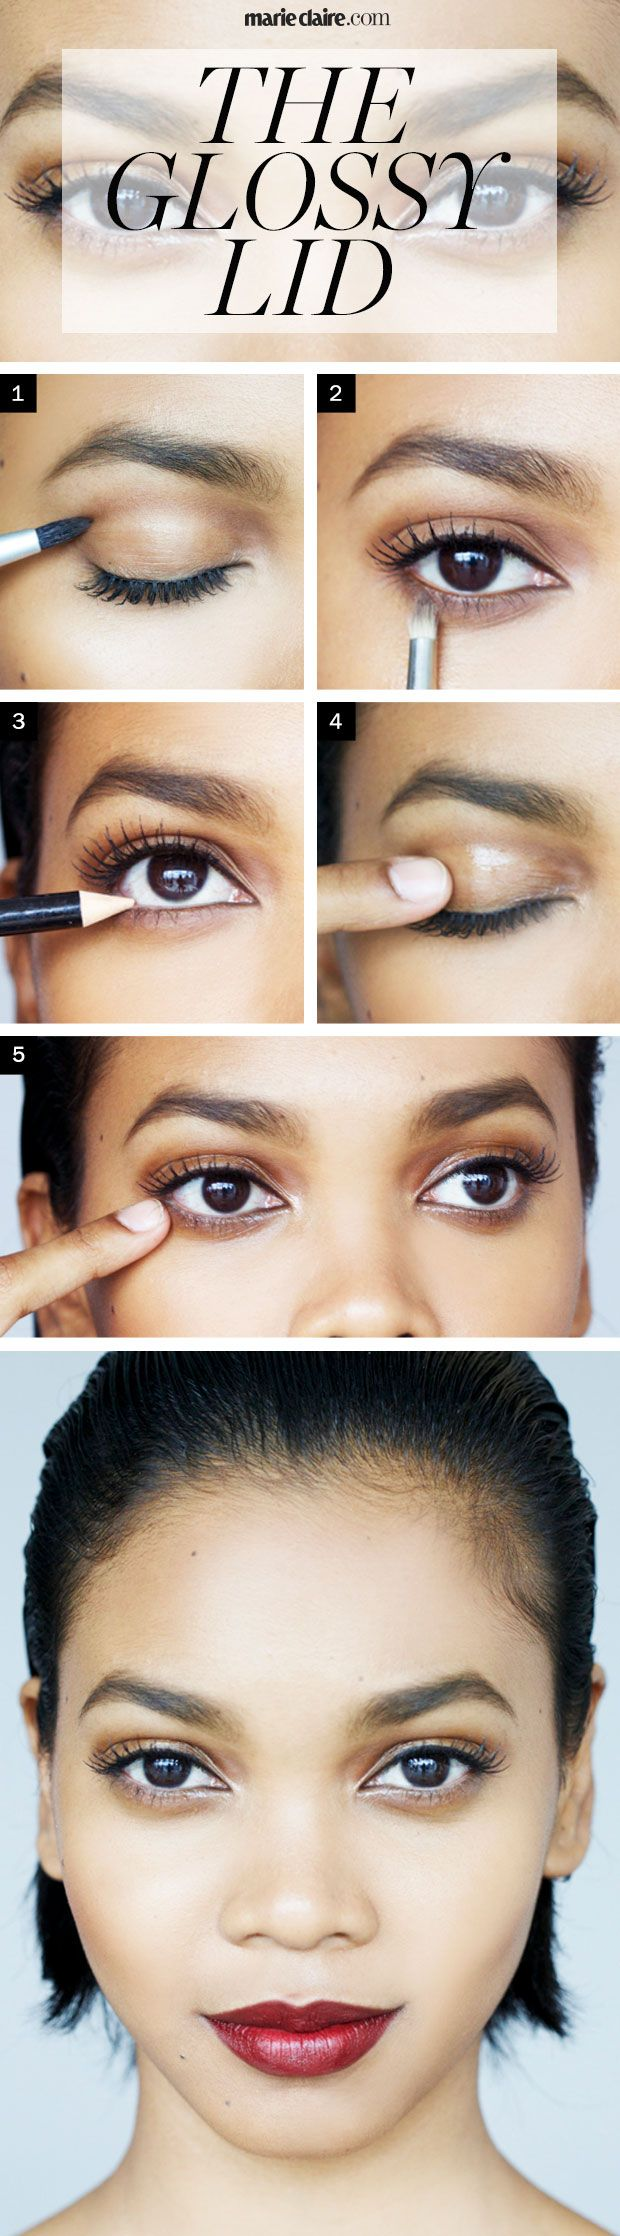 Makeup How To Wet Eyeshadow How To Get A Glossy Wet Eye Lid